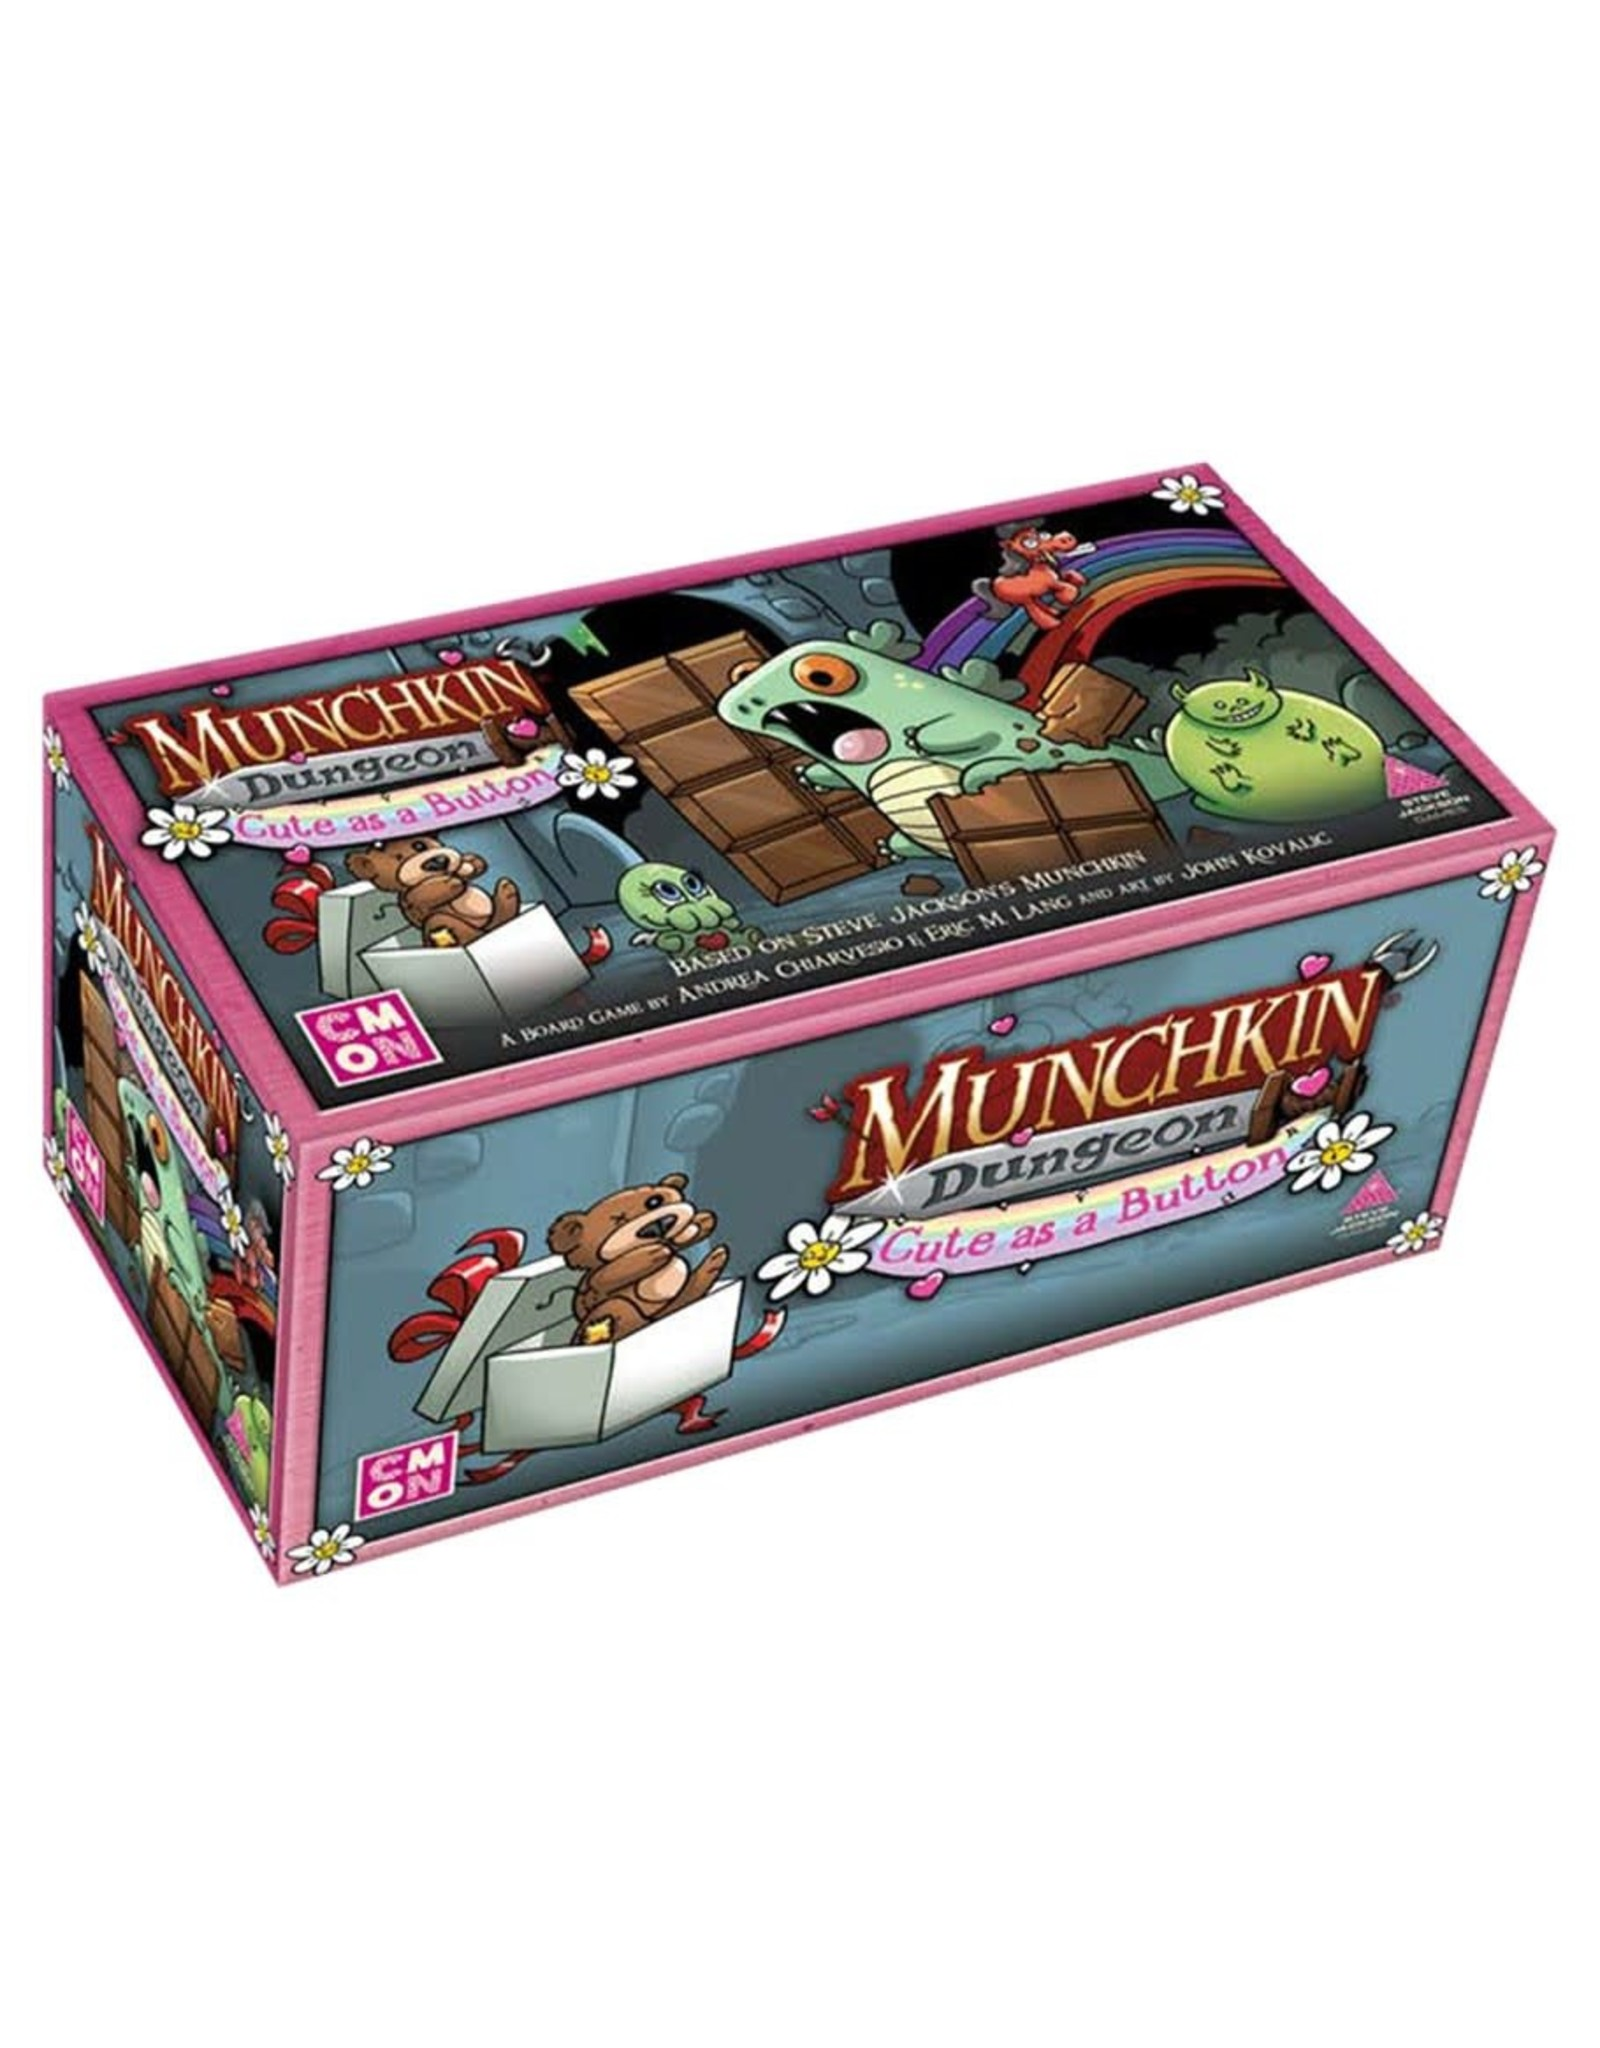 Cool Mini or Not Munchkin Dungeon: Cute as a Button